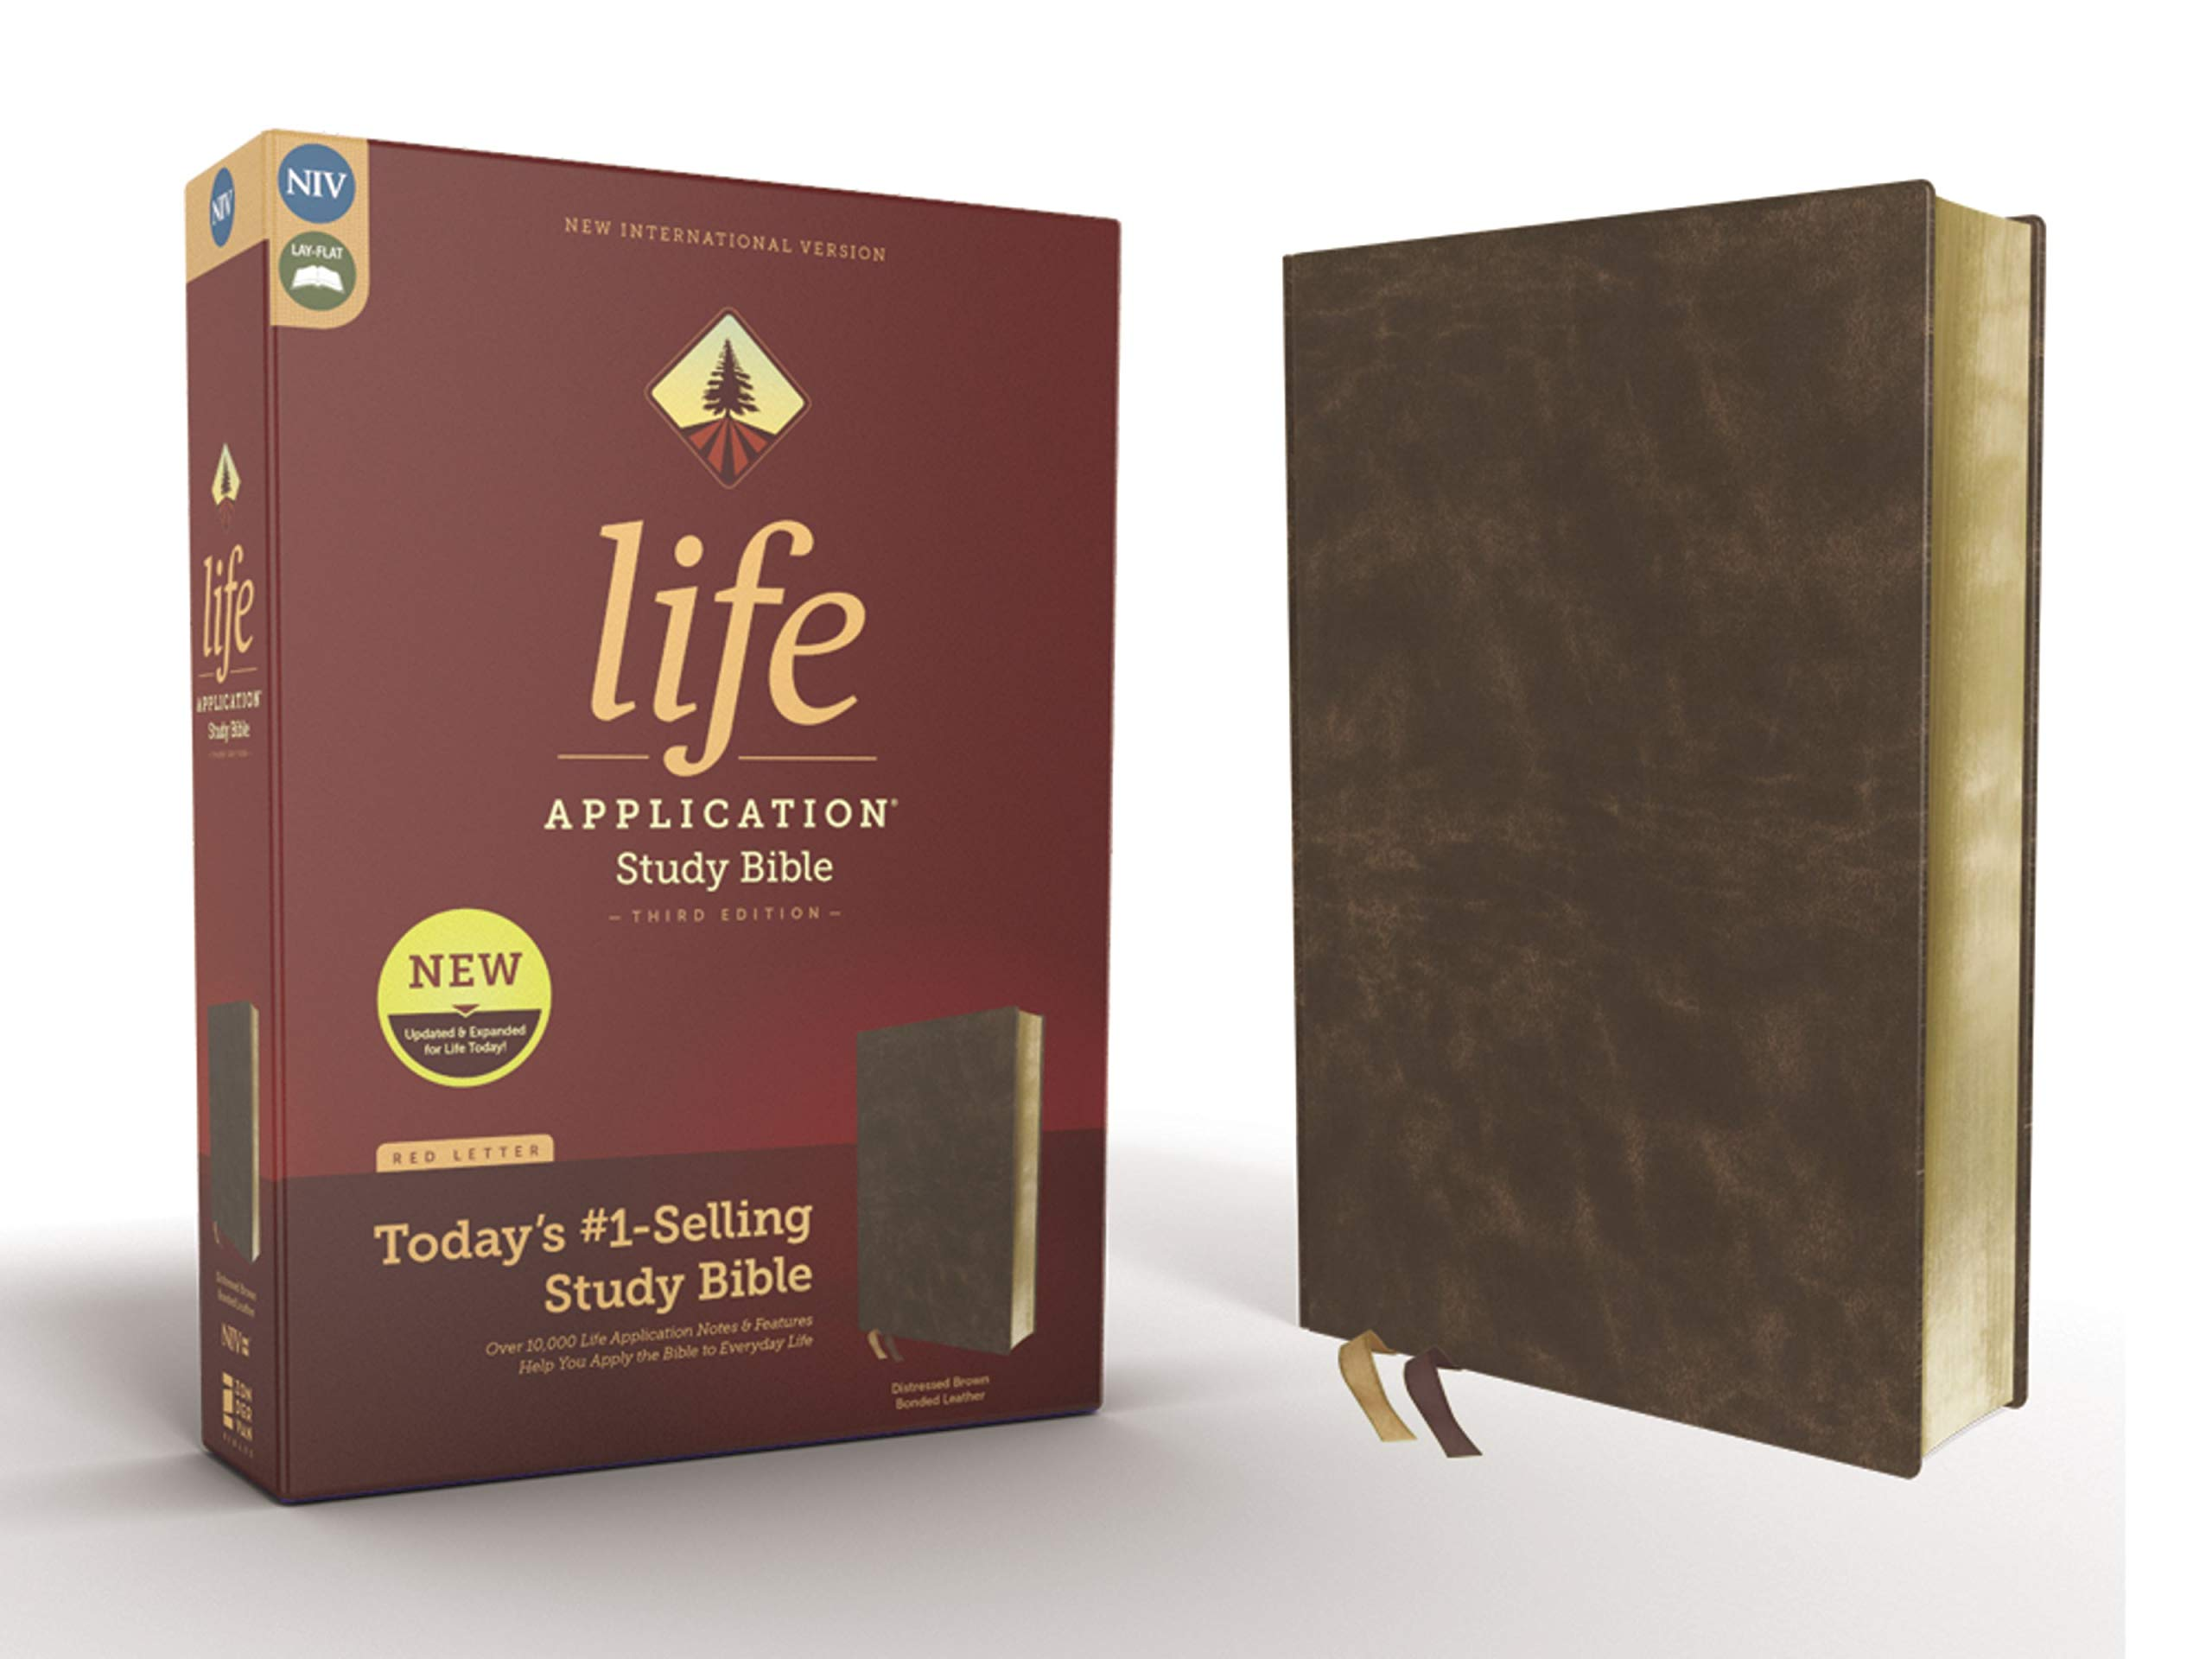 NIV, Life Application Study Bible, Third Edition, Bonded Leather, Brown, Red Letter Edition